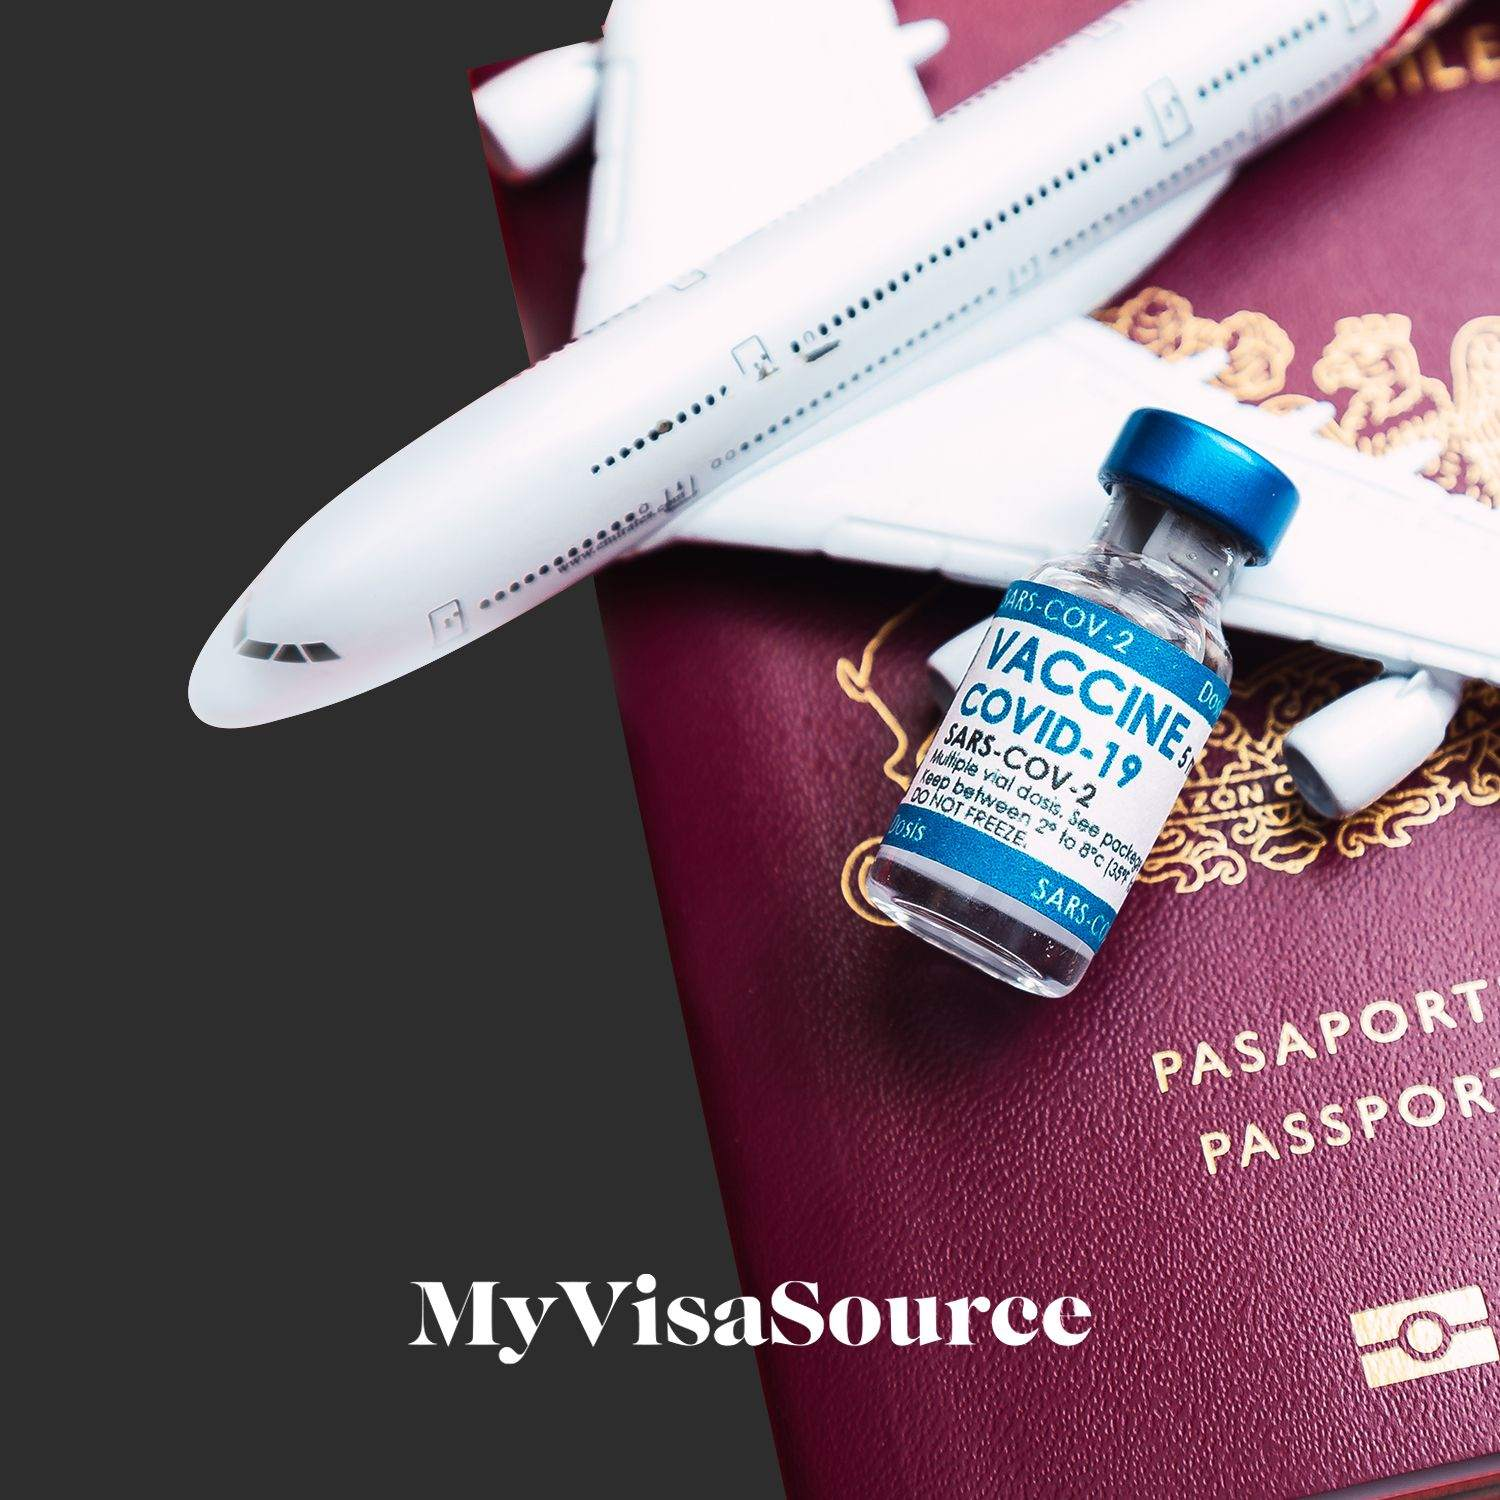 covid vaccine bottle on top of a passport my visa source